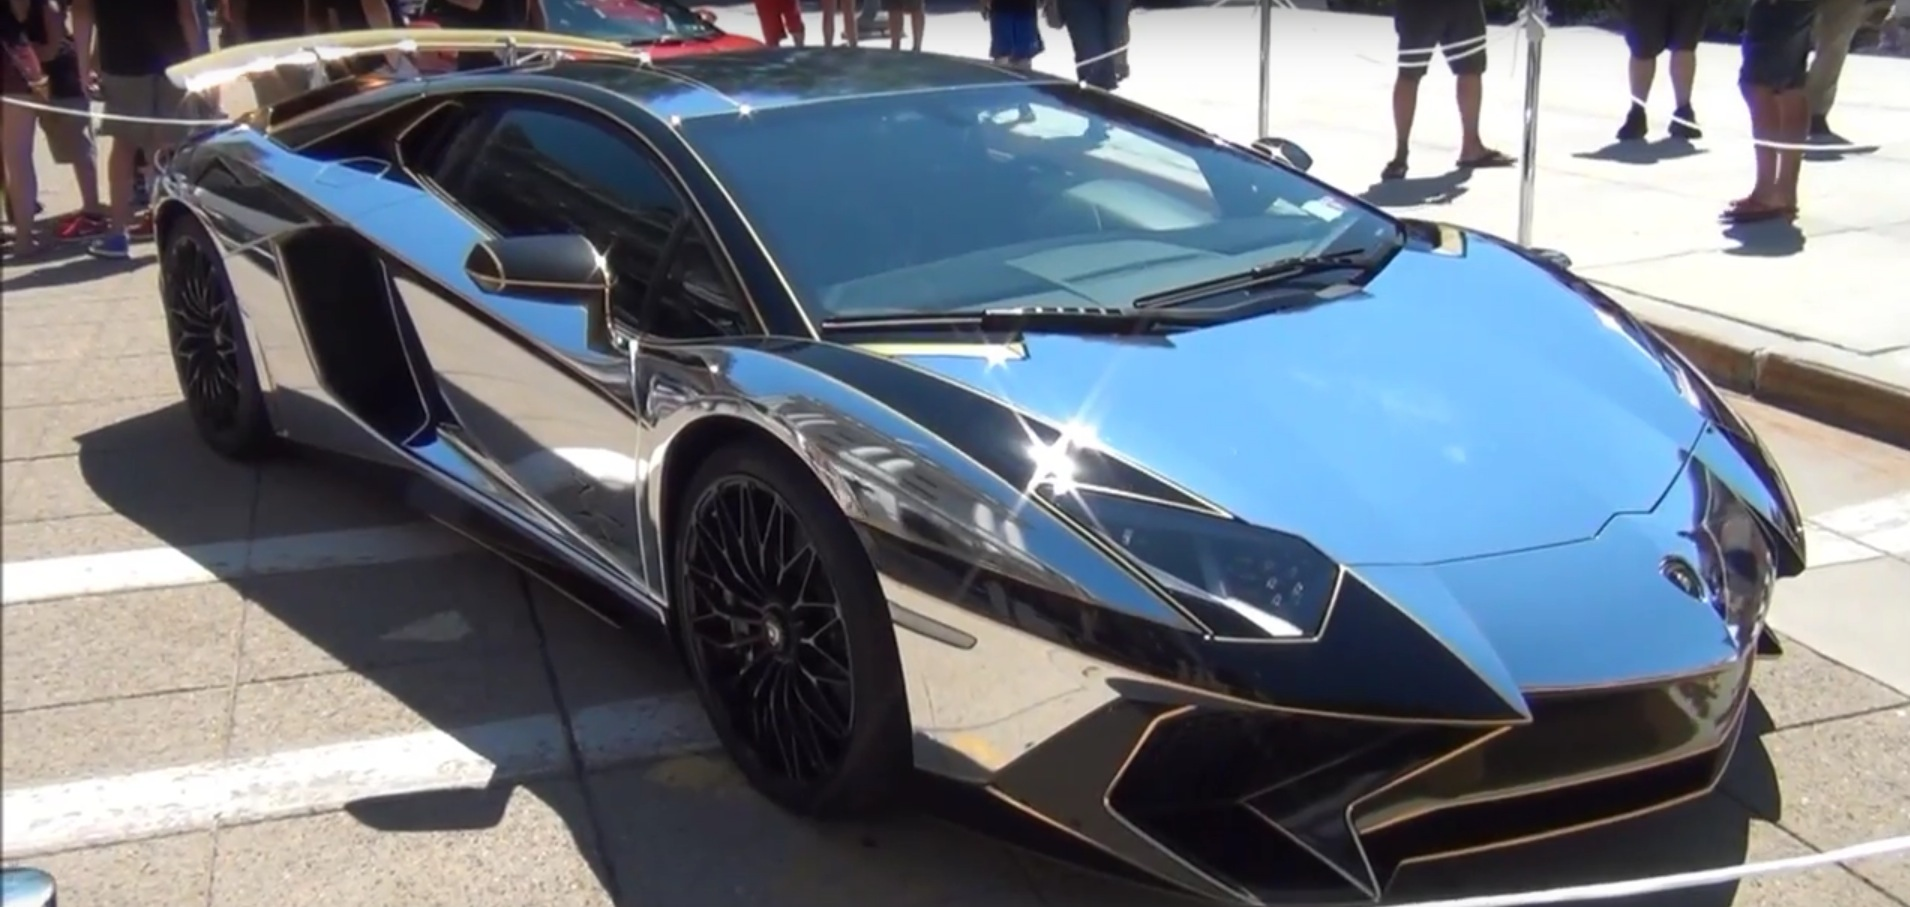 2016 Lamborghini Aventador Sv Gets Chrome Gold Wrap For